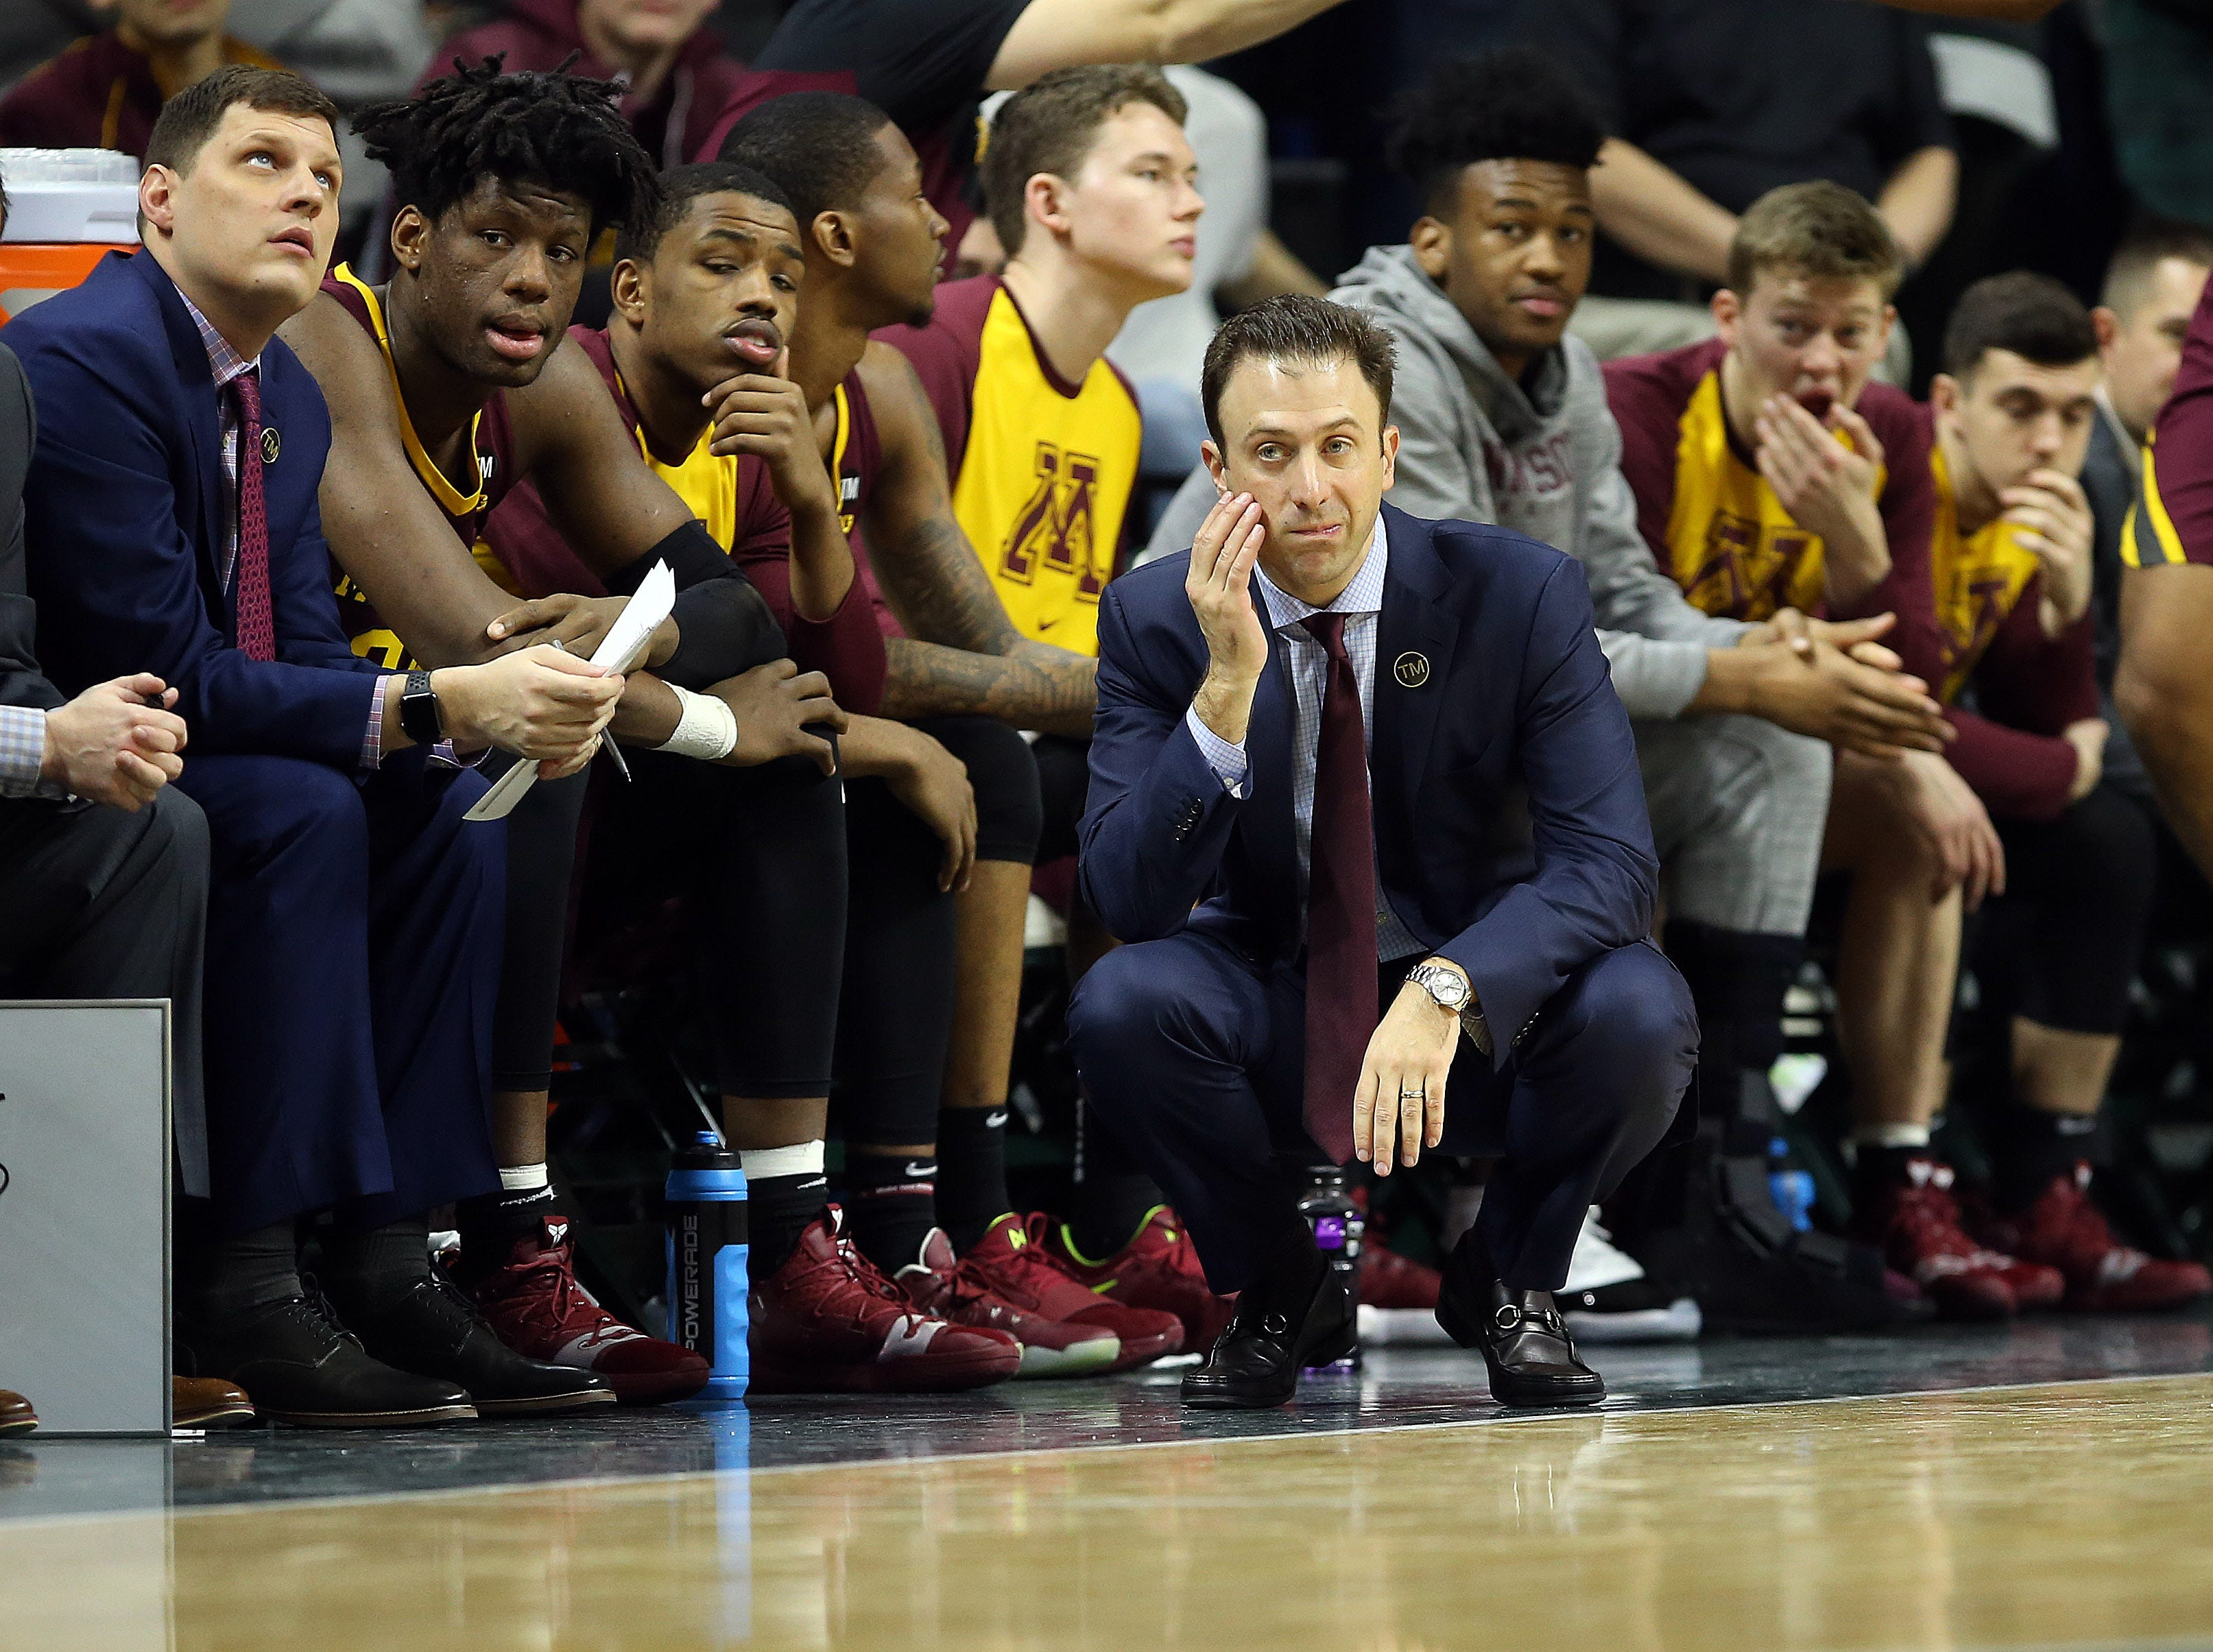 Feb 9, 2019; East Lansing, MI, USA; Minnesota Golden Gophers head coach Rick Pitino reacts during the first half against the Michigan State Spartans at the Breslin Center. Mandatory Credit: Mike Carter-USA TODAY Sports